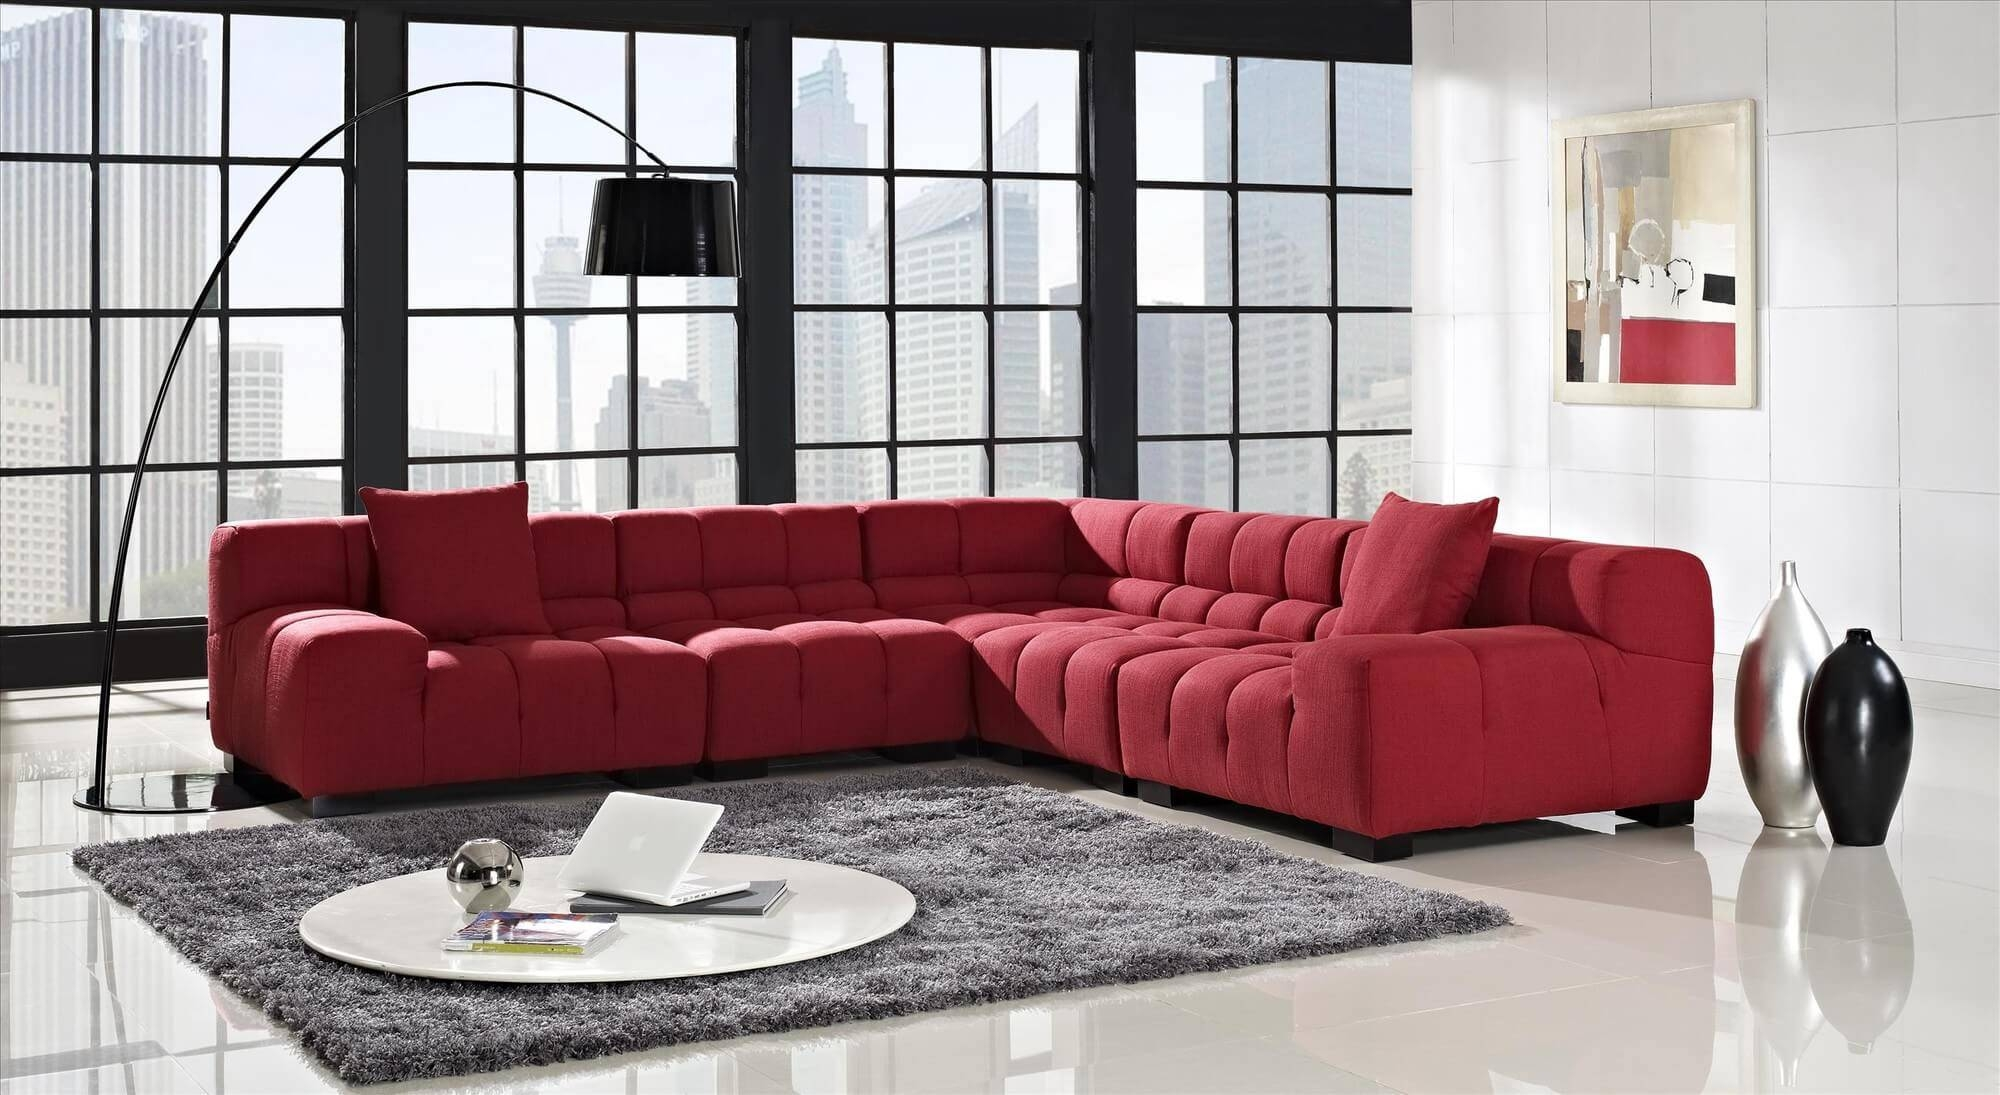 Explore Gallery of Luxury Tufted Sectionals Sofas 71 In 10 Foot